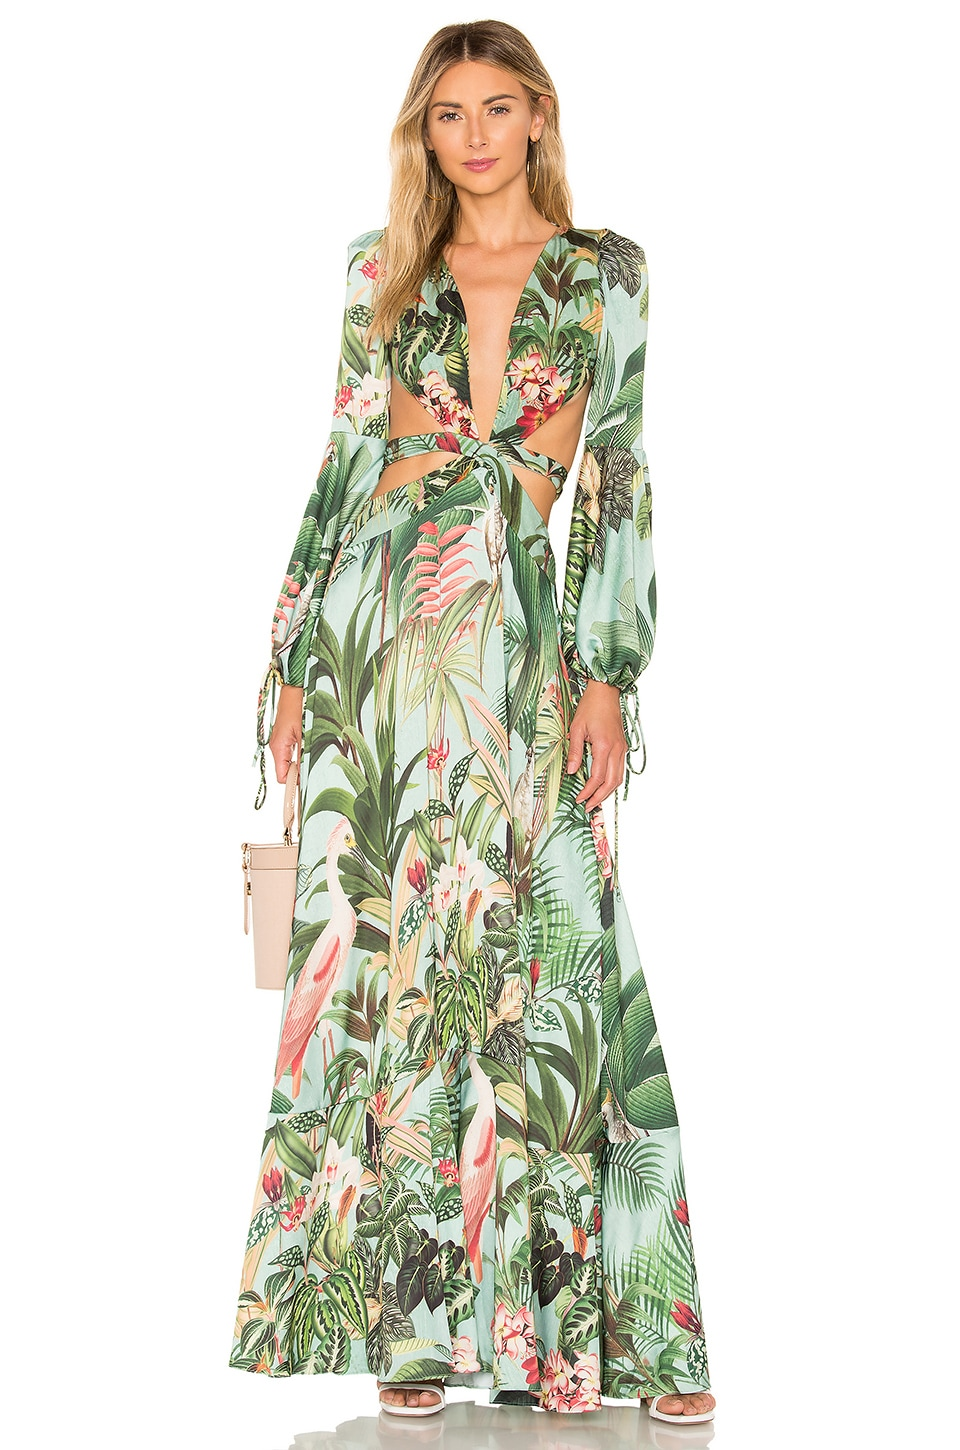 PatBo Paradise Print Cutout Gown in Blue